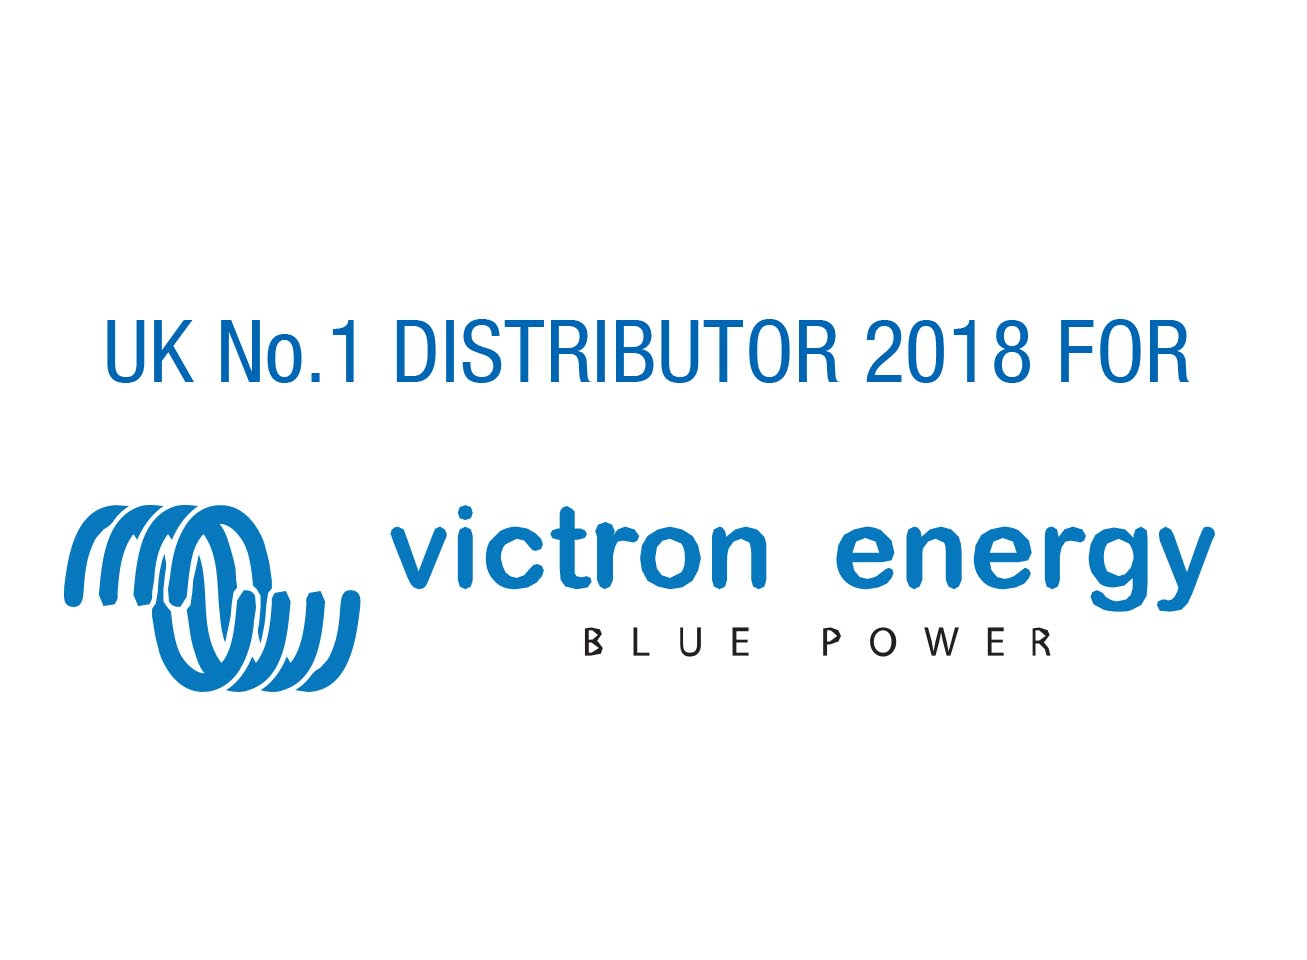 UK No.1 Distributor 2018 for Victron